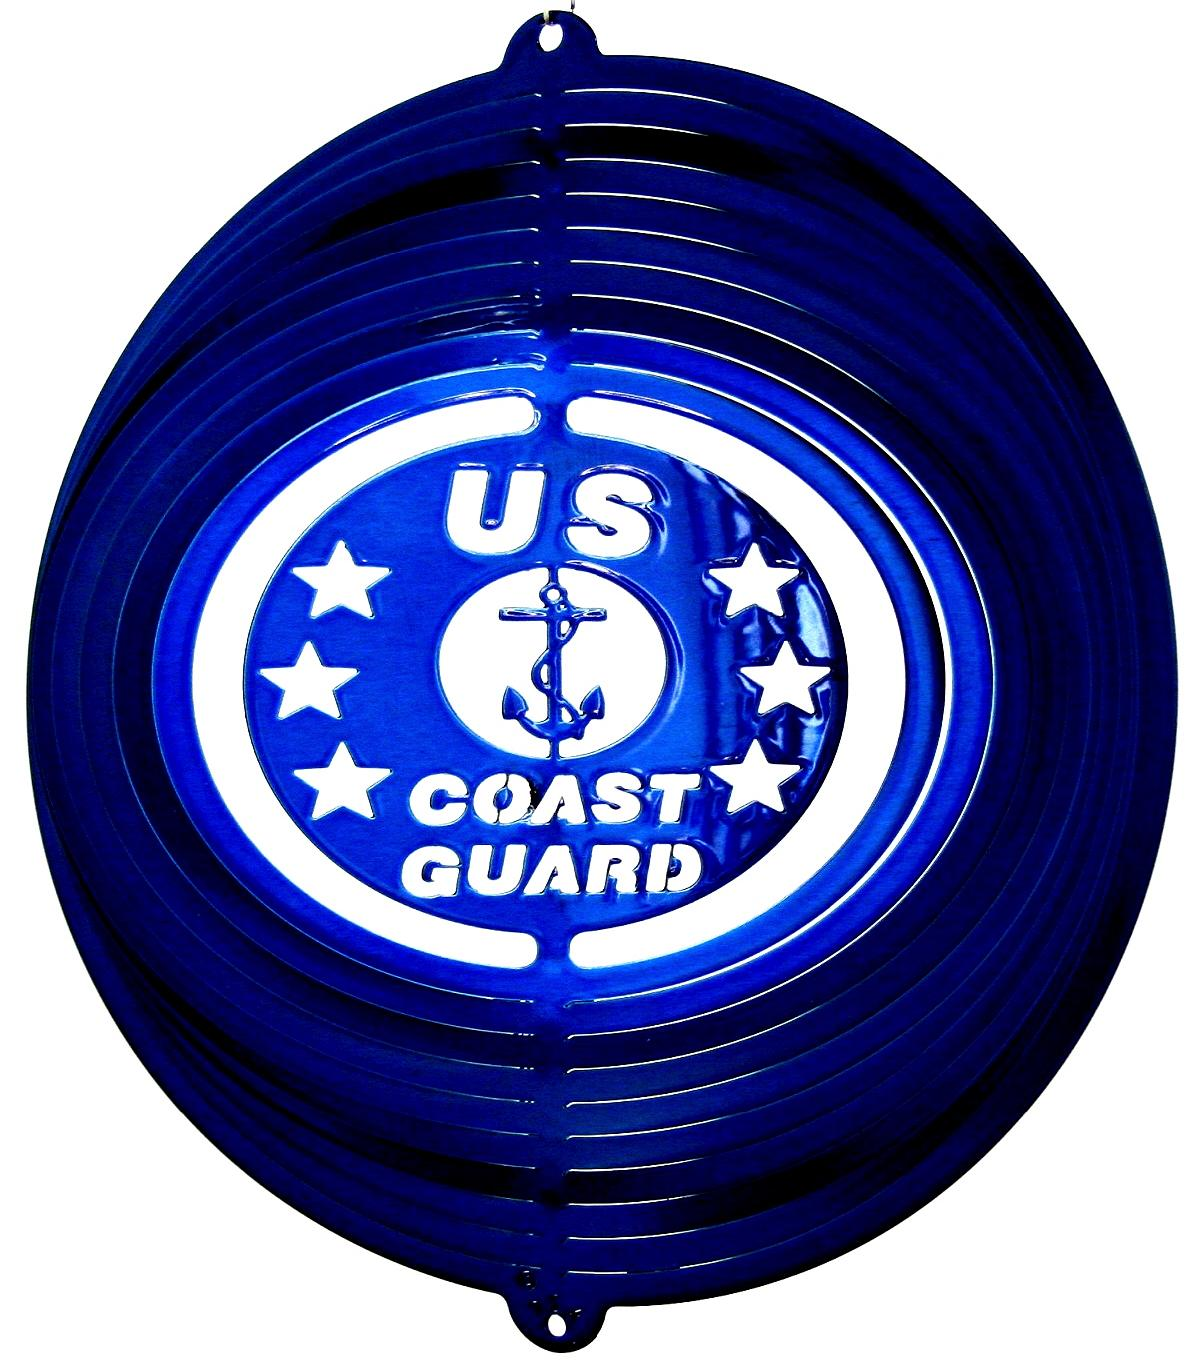 12 INCH COAST GUARD WIND SPINNER